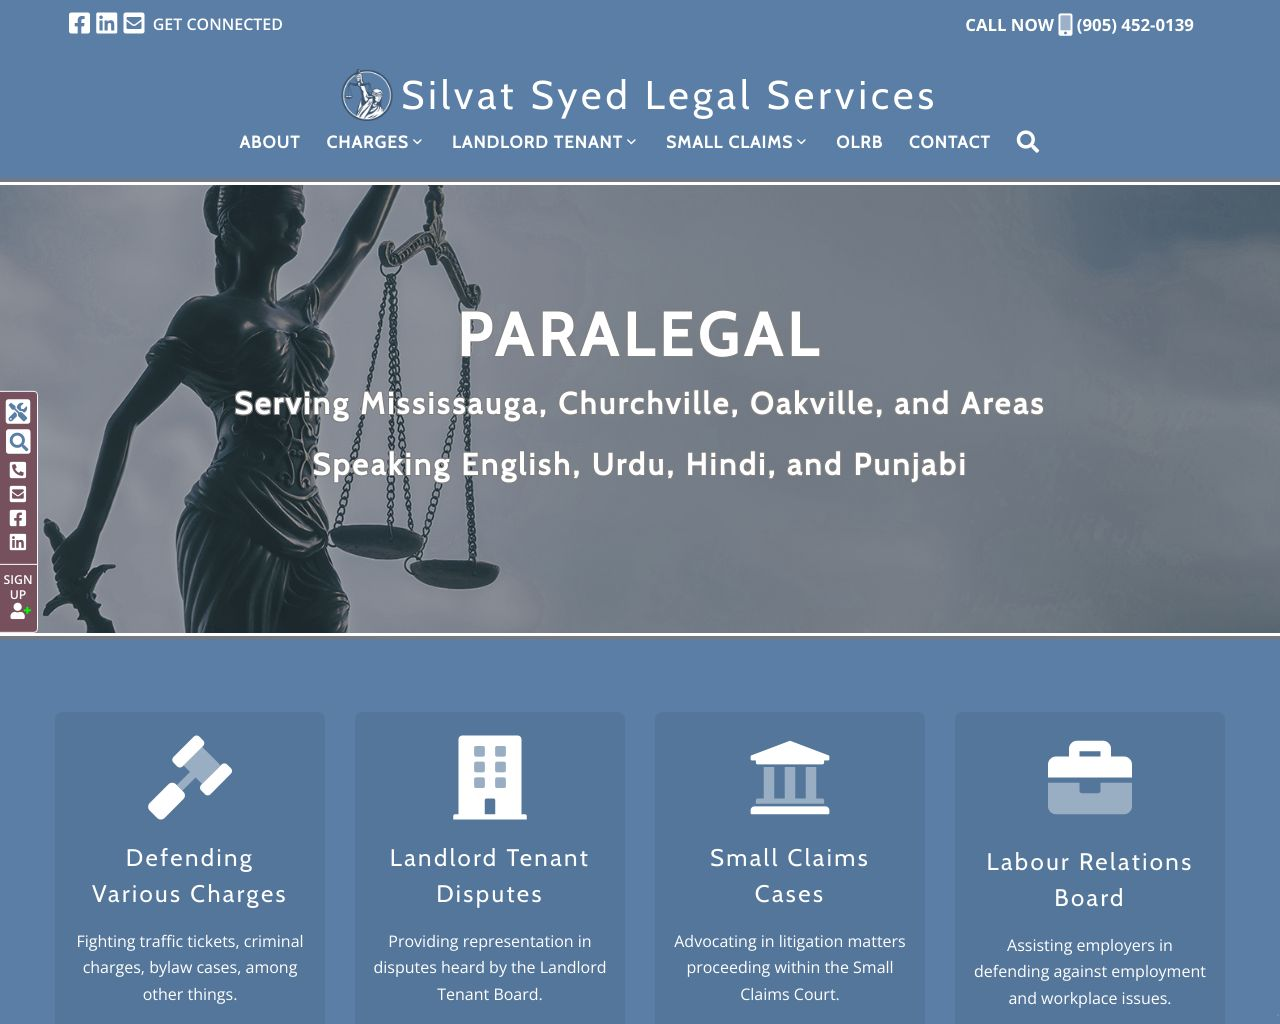 Website: Silvat Syed Legal Services